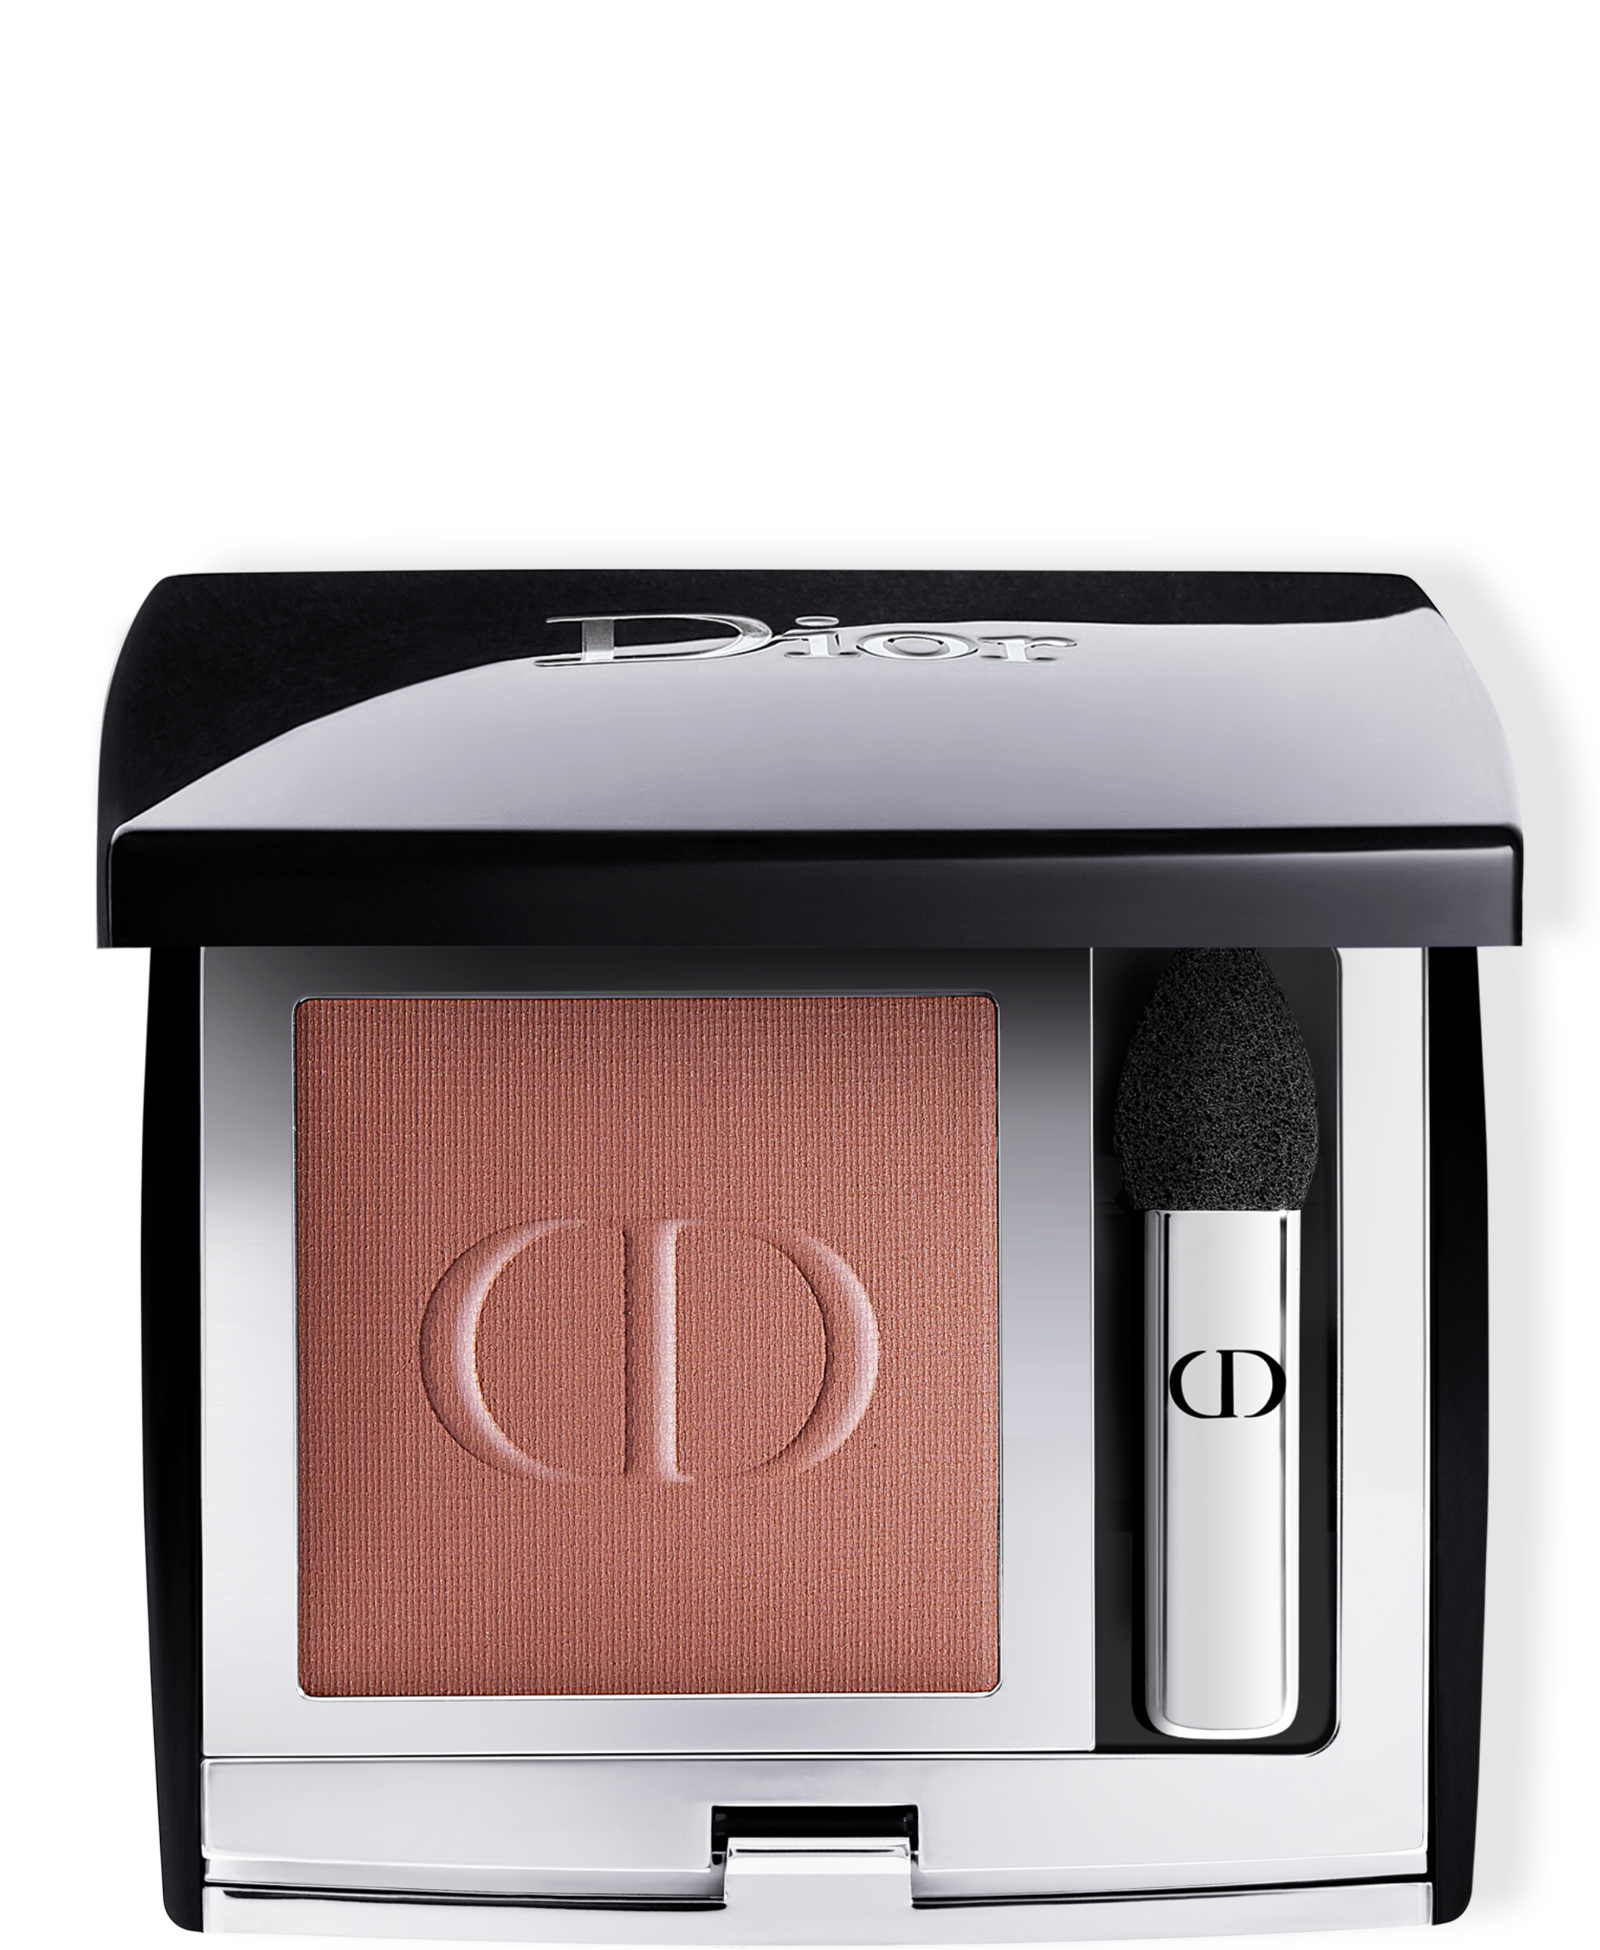 DIOR Mono Couleur Couture Eyeshadow, 763 rosewood